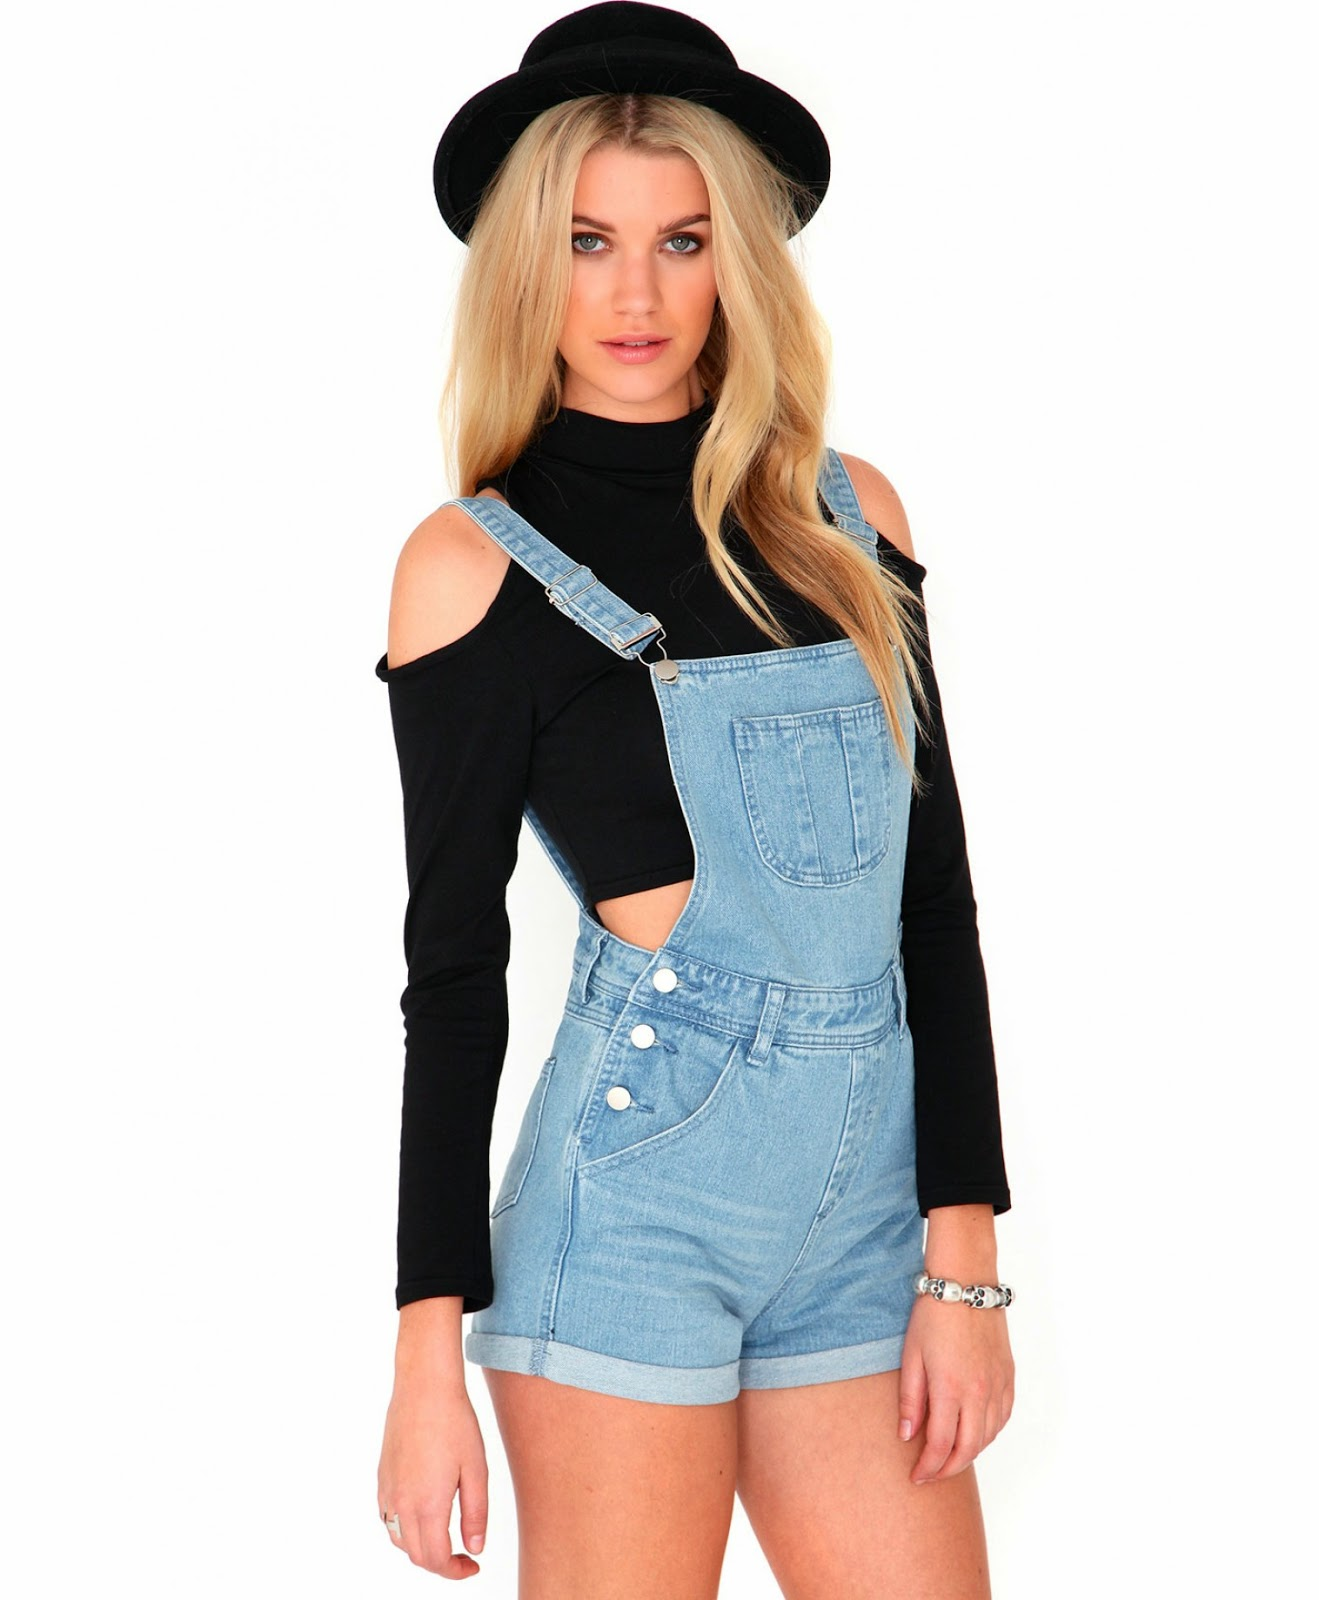 TYM's Guide To Style Crop Top Without Showing Stomach 4